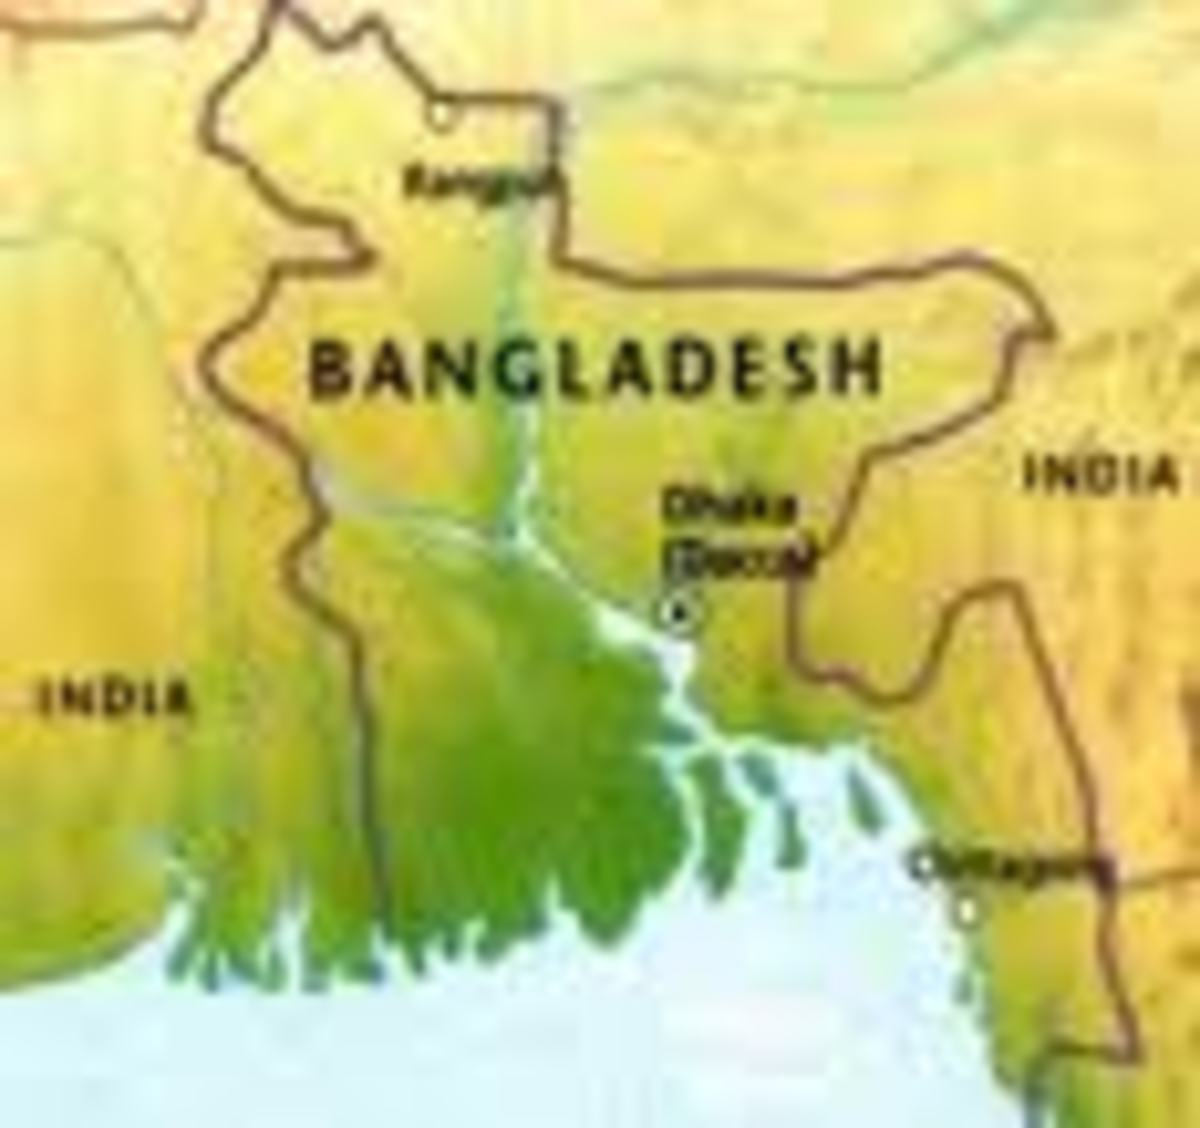 LAND LAW OF BANGLADESH